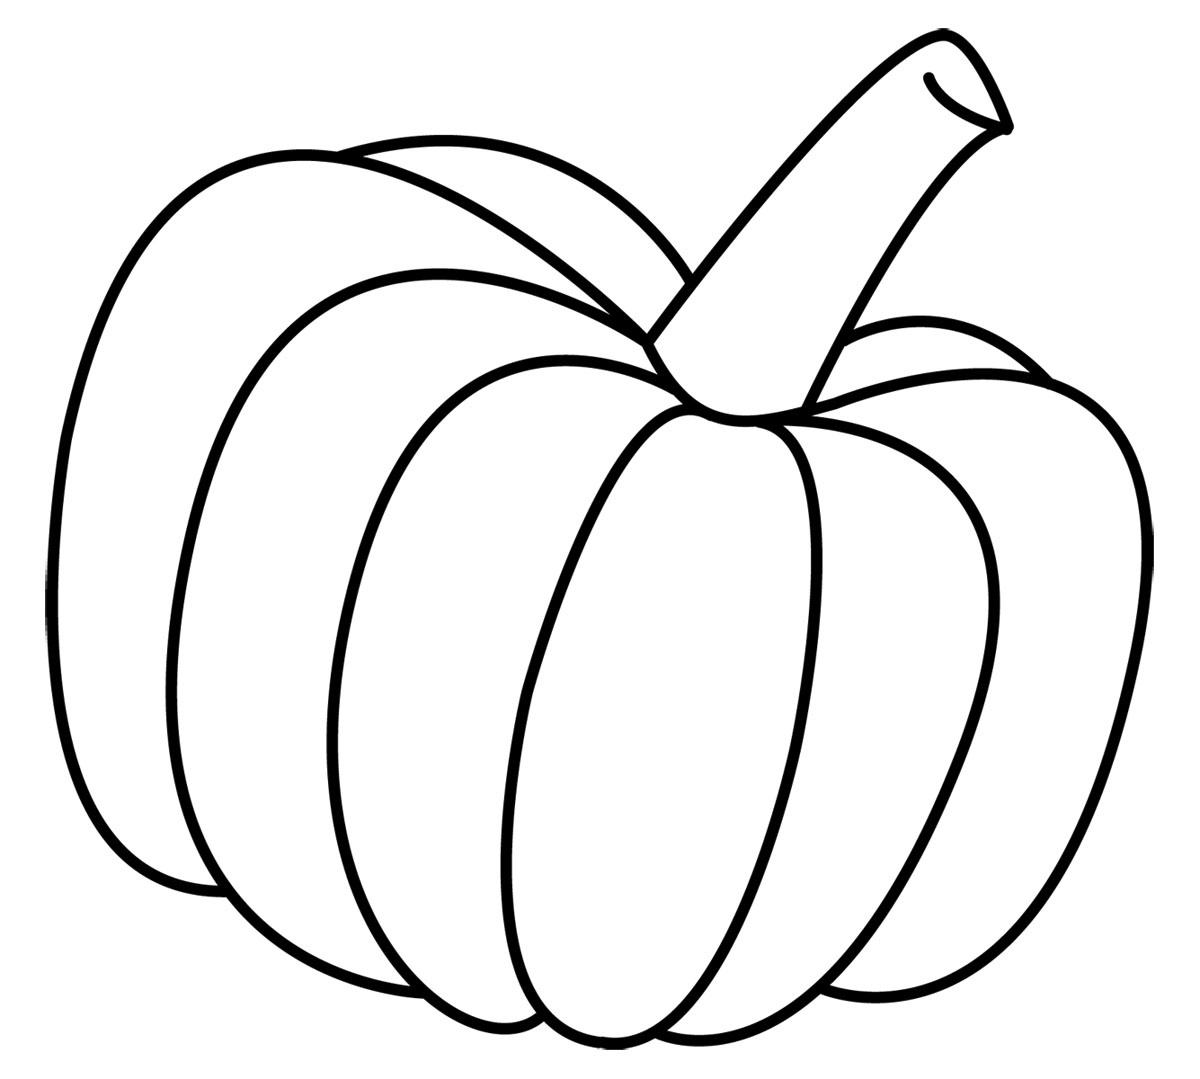 Auburn Pumpkin Template Printable. Printable. Free Printable Worksheets - Pumpkin Shape Template Printable Free